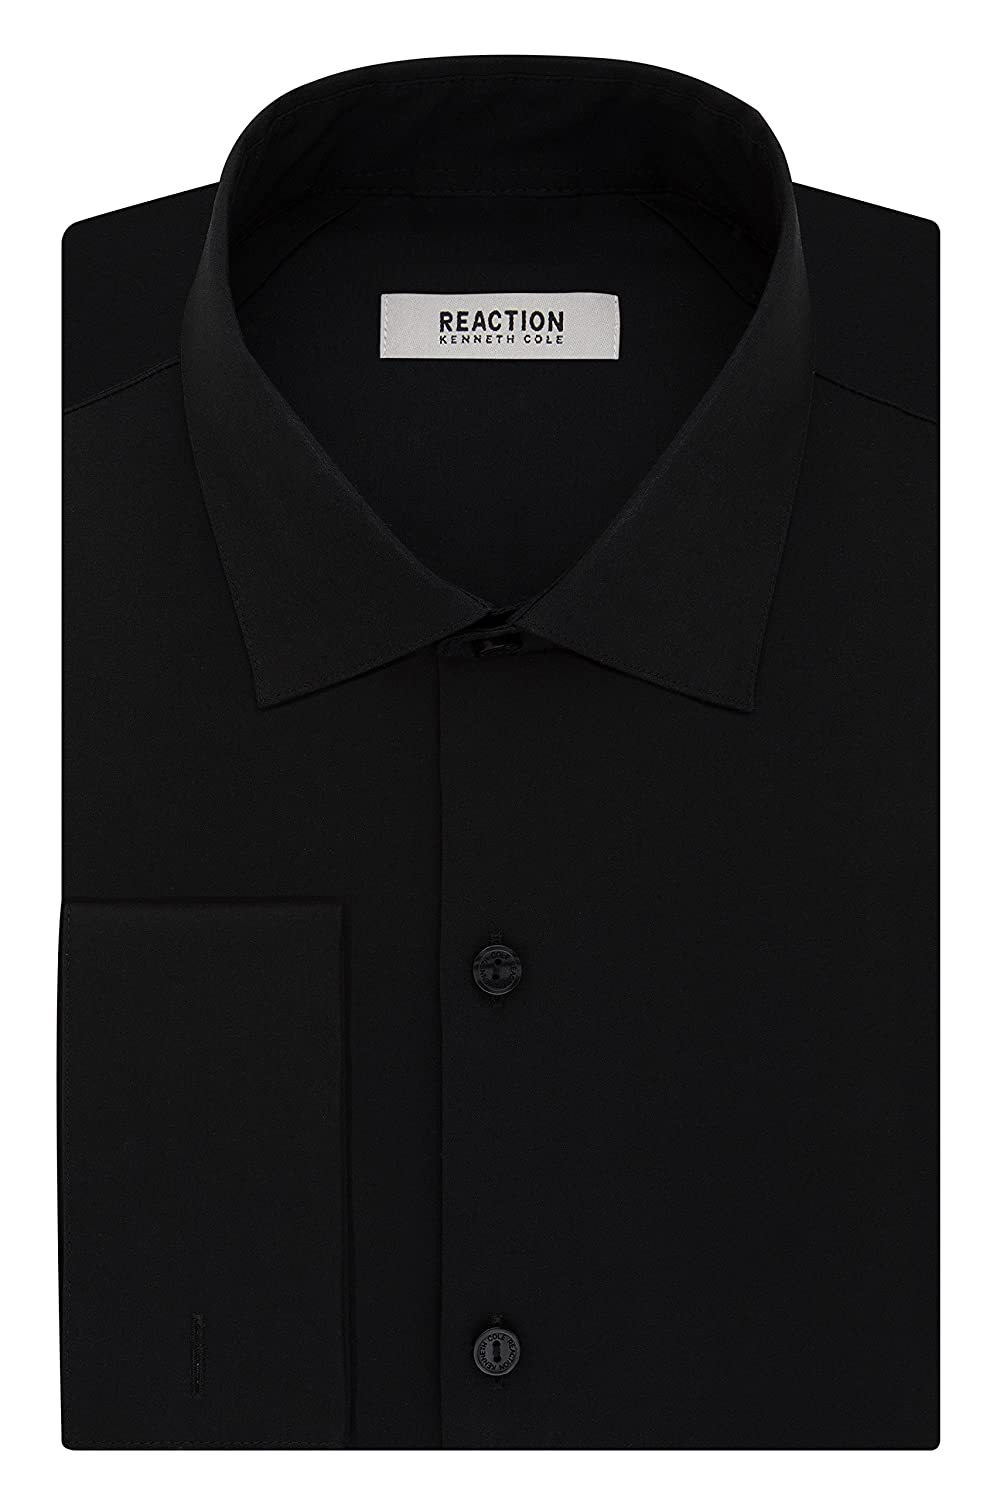 Kenneth Cole Reaction Mens Technicole Slim Fit French Cuff Dress